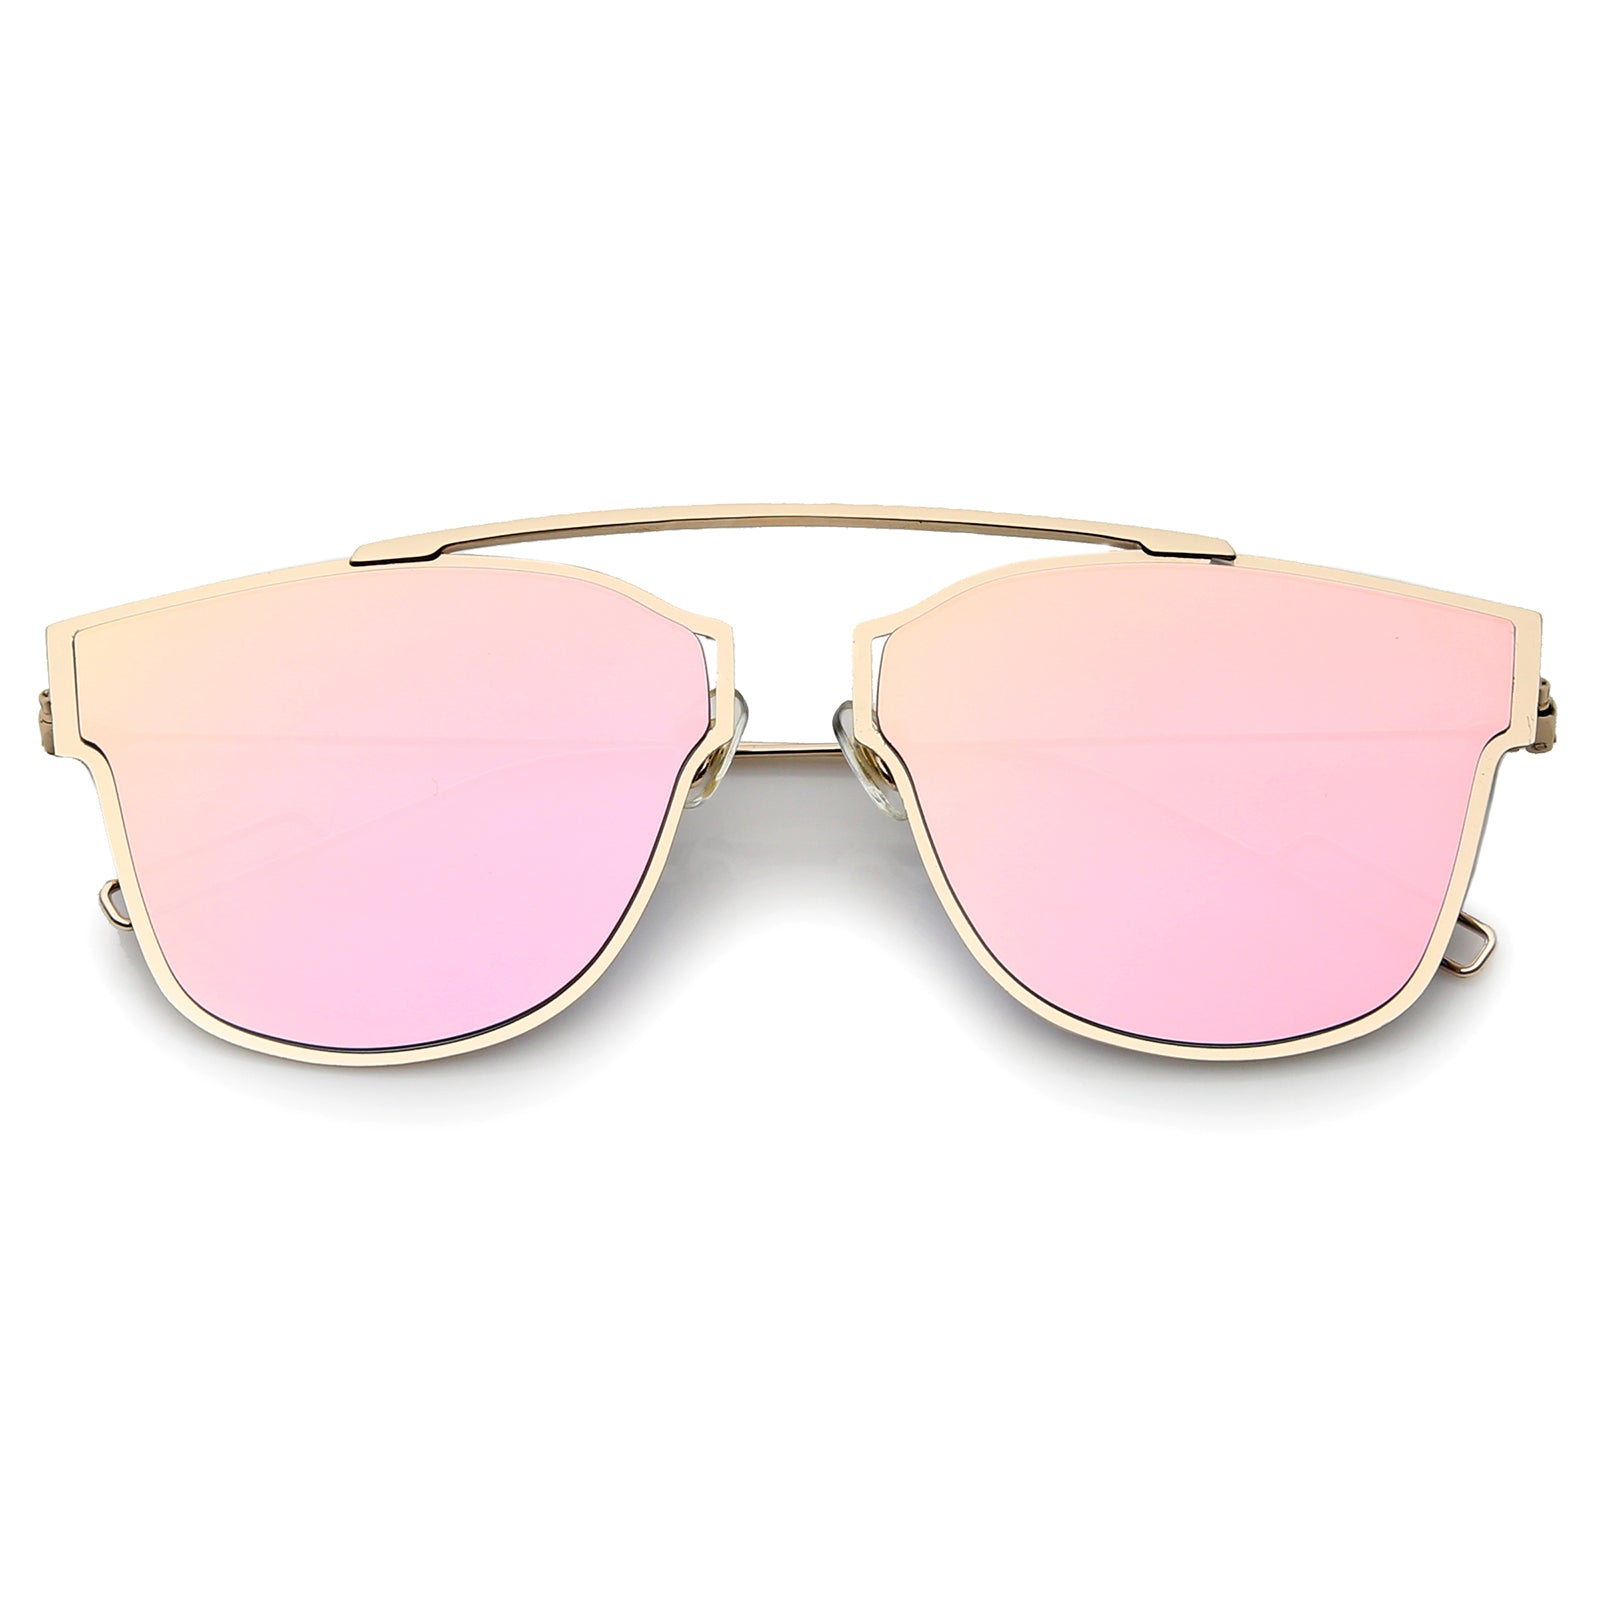 Modern Flash Mirror Lens Ultra Thin Open Metal Minimal Pantos Aviator Sunglasses 59mm - sunglass.la - 7